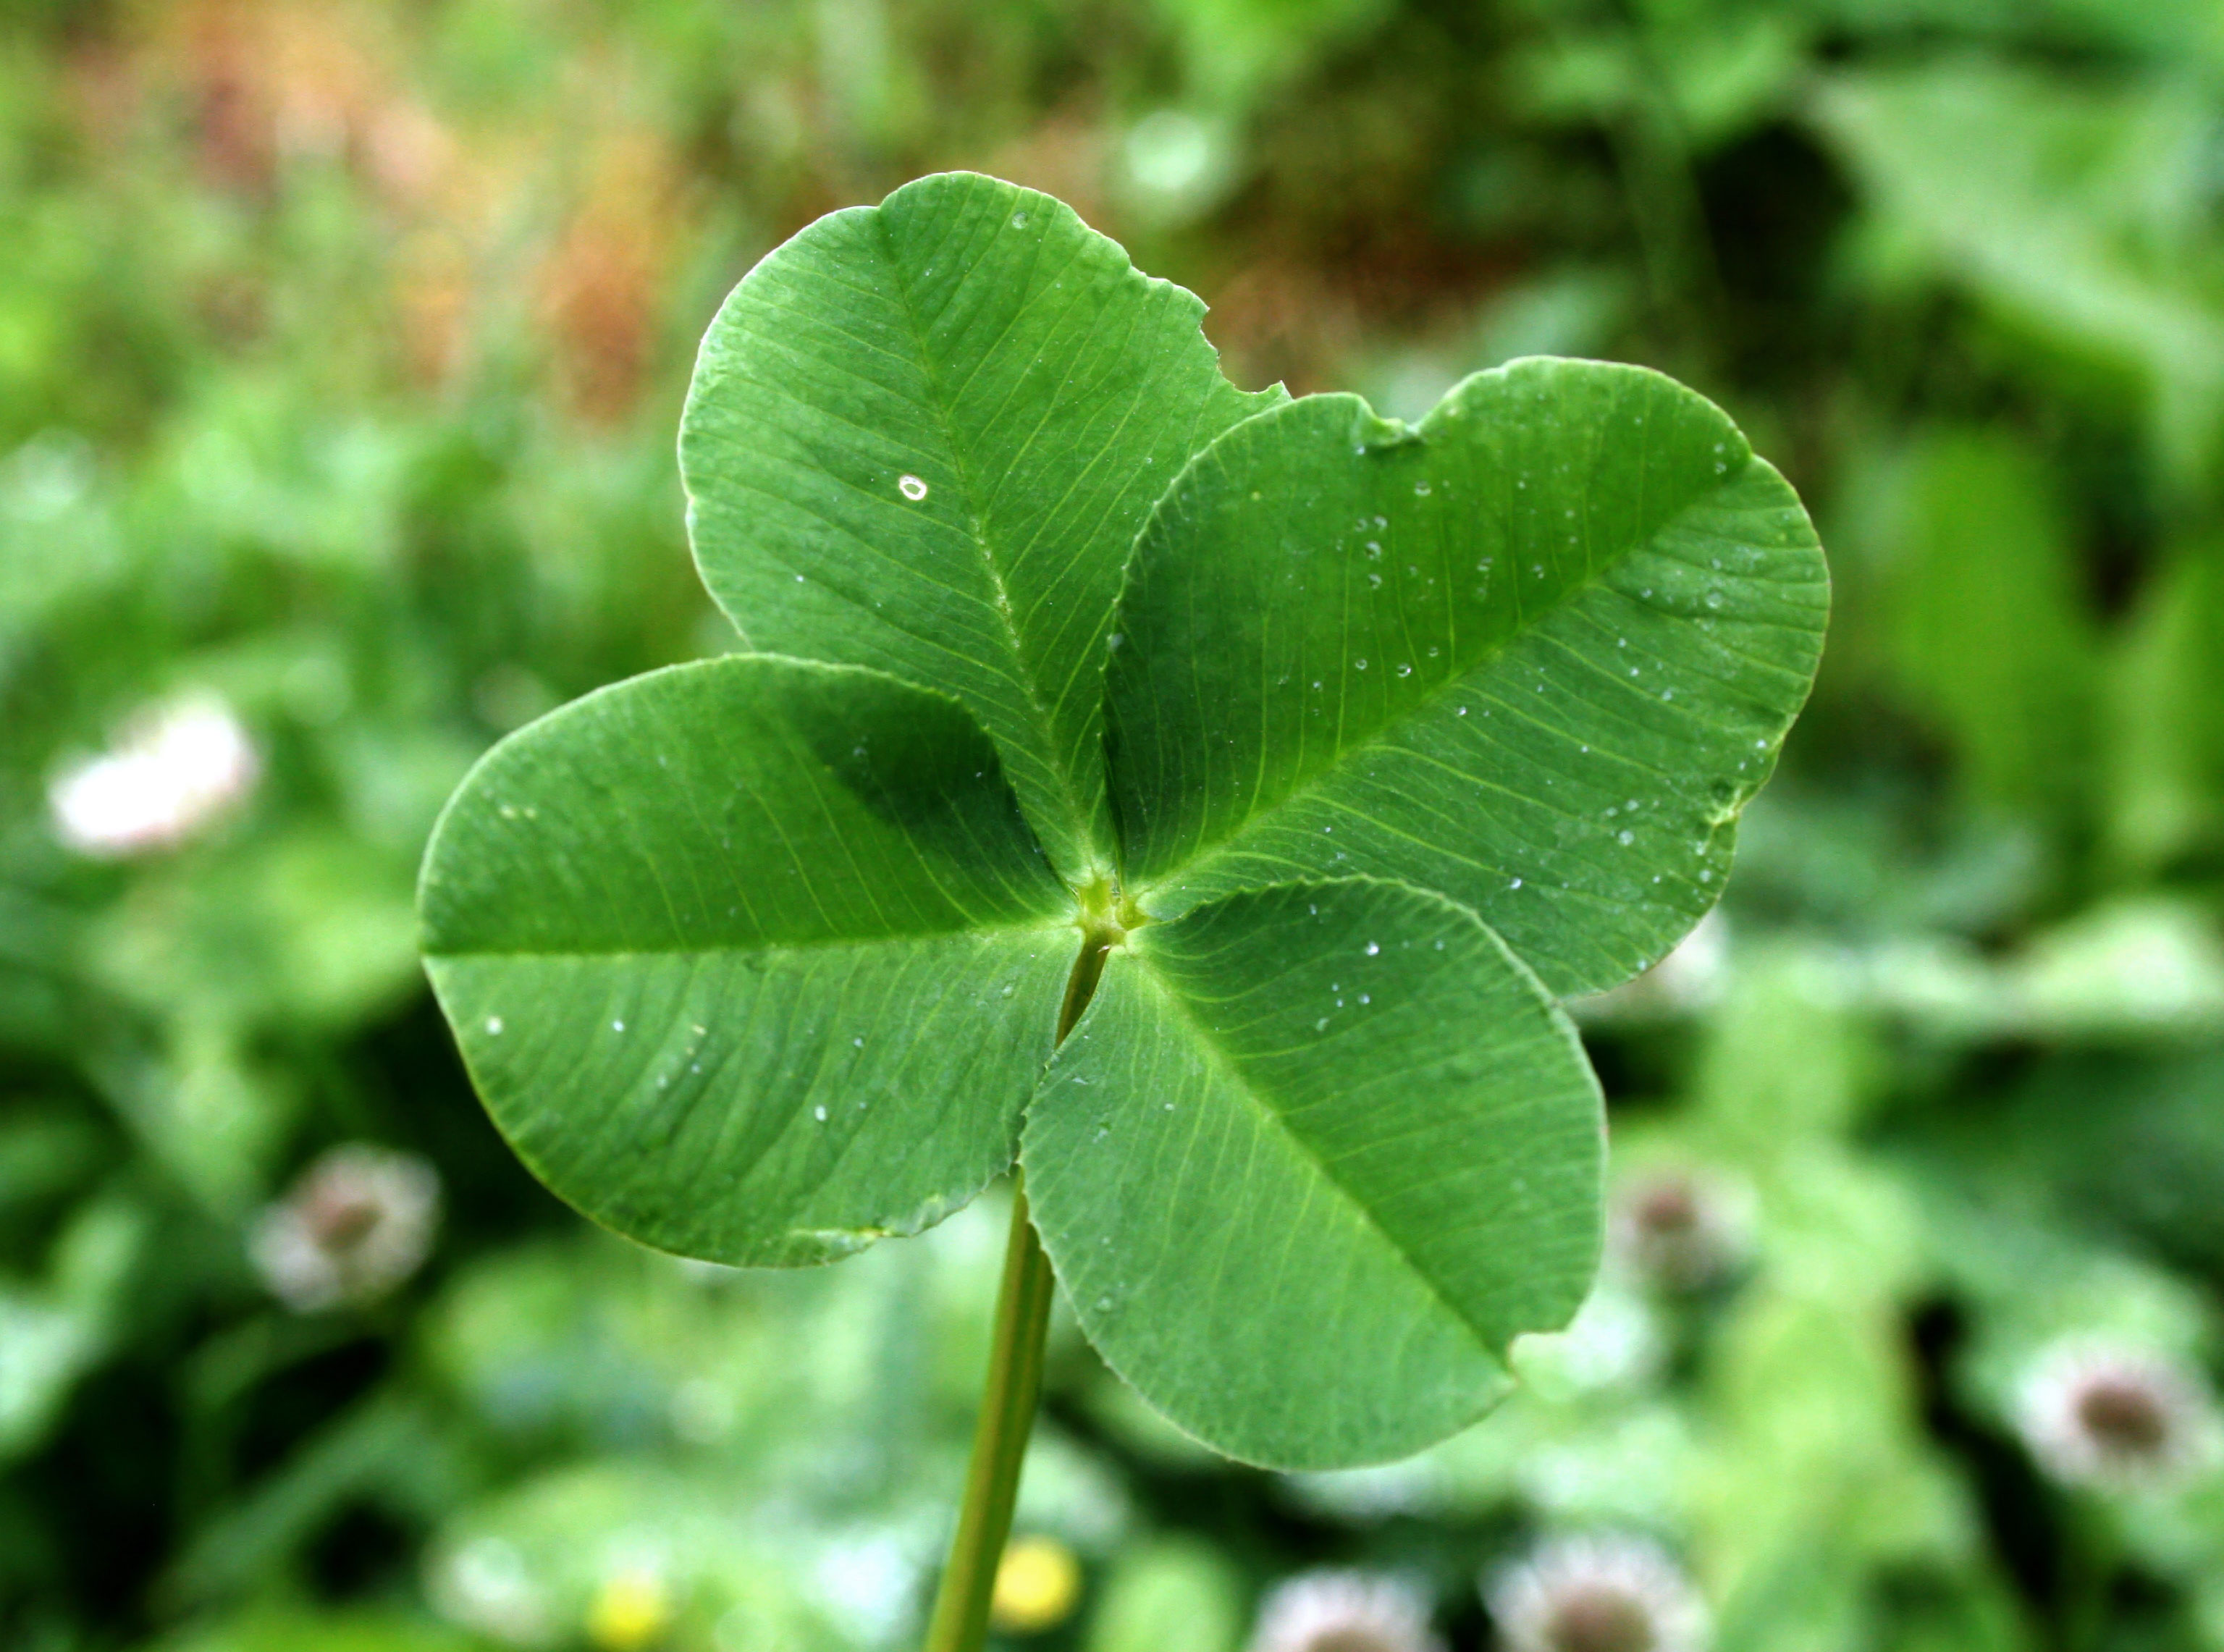 Why do some clovers have four leaves? Maxence, 8 years old ...